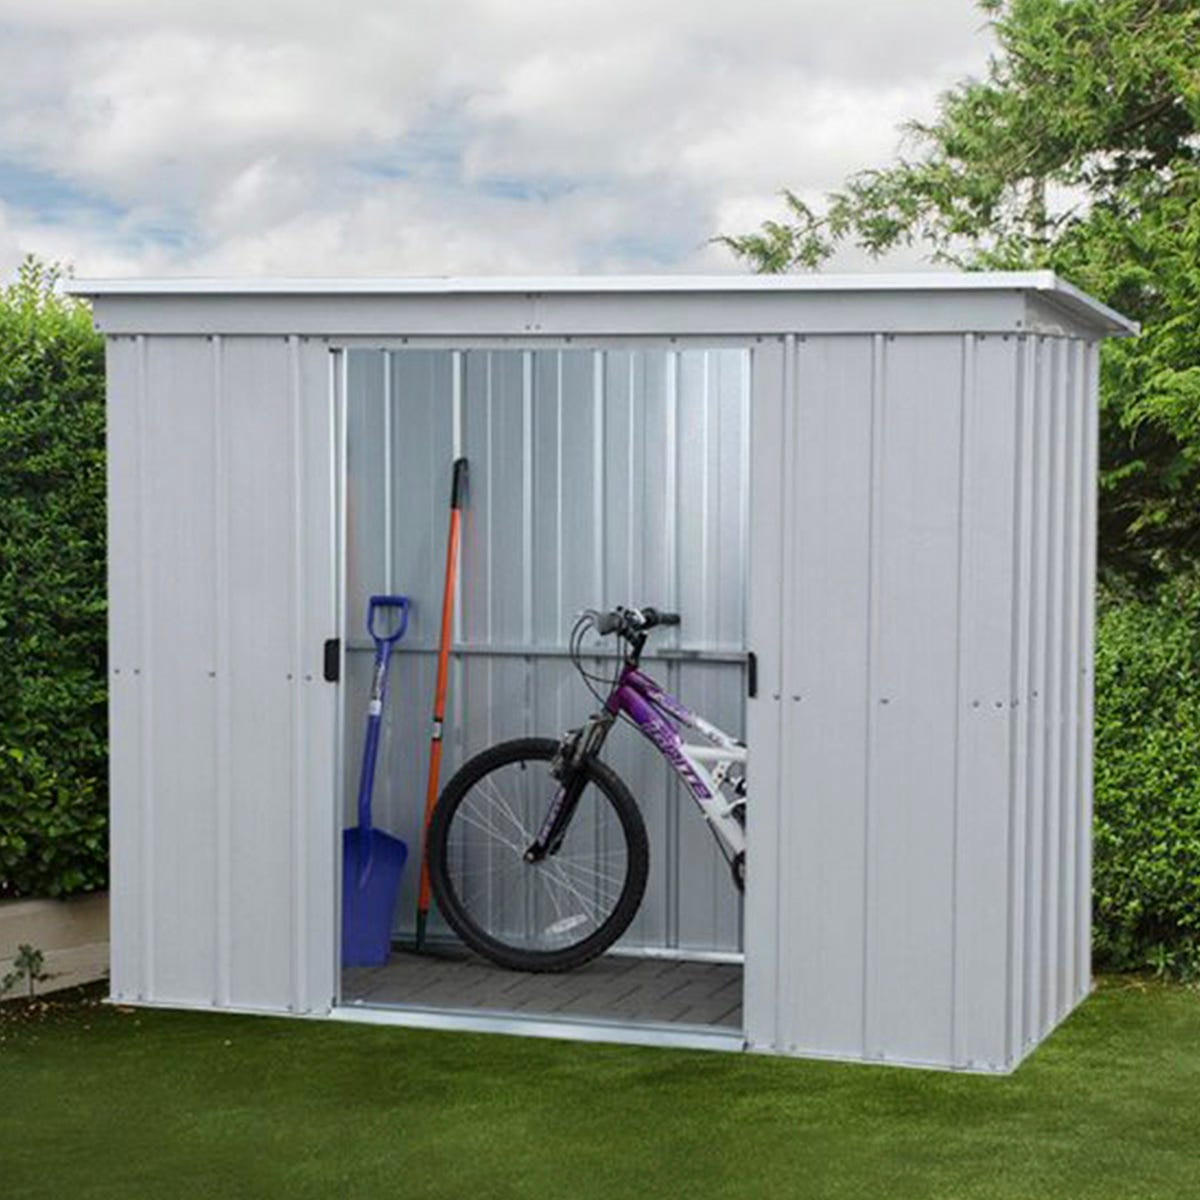 Yardmaster Store All Metal Pent Shed 10 x 4ft with Floor Support Frame